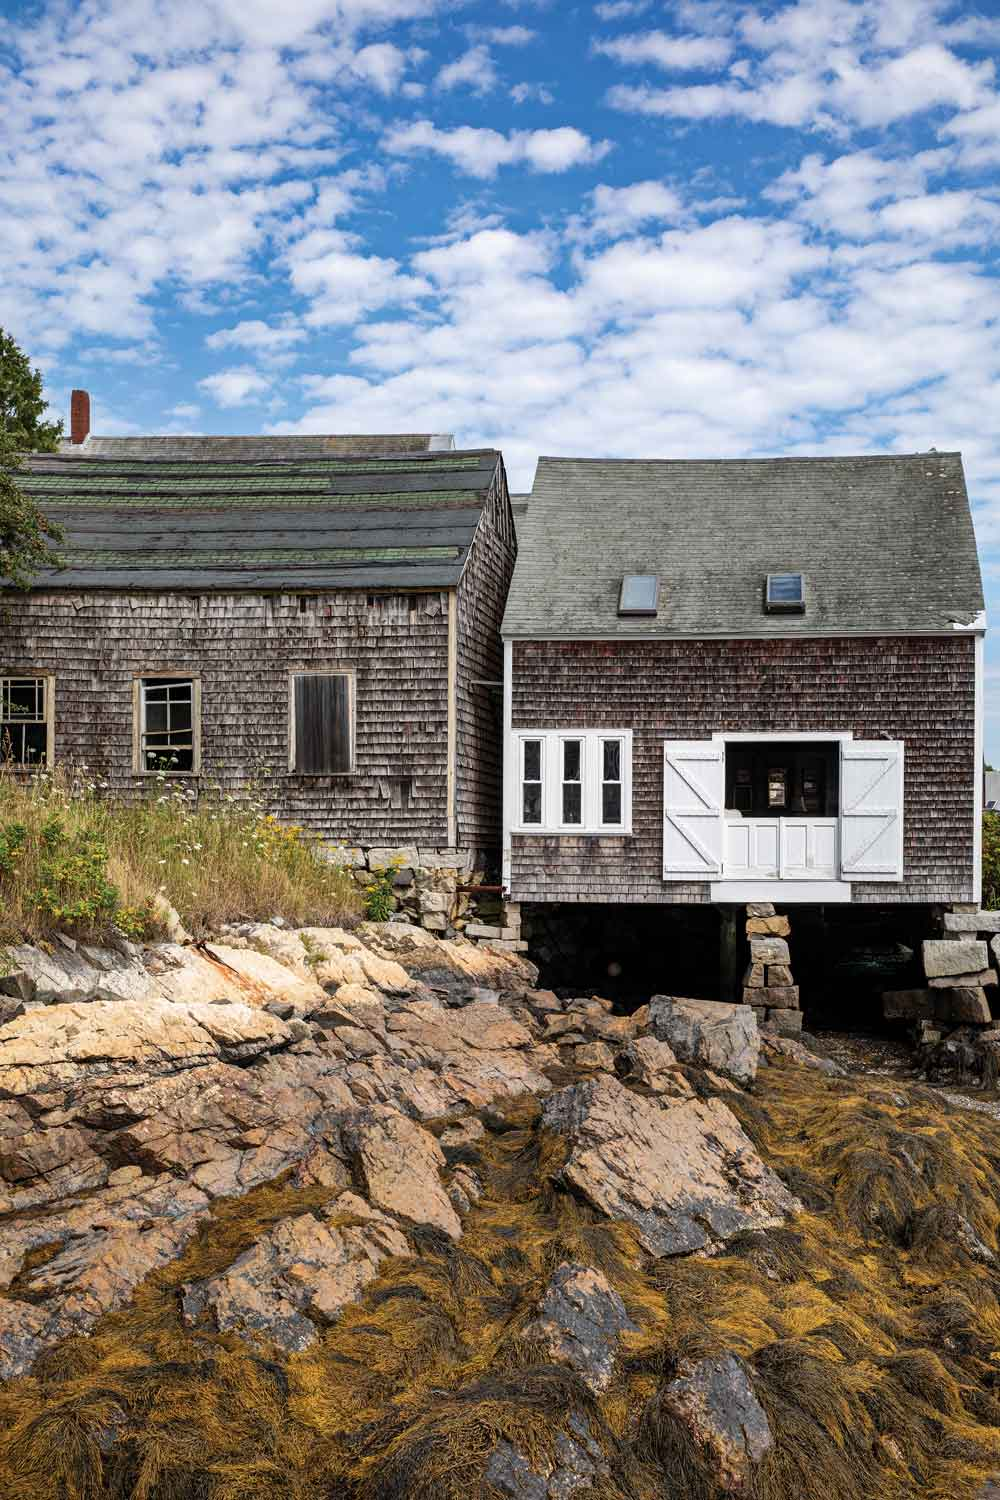 The two-room — one up, one down — cottage rests entirely on pilings; the island's former icehouse sits behind it